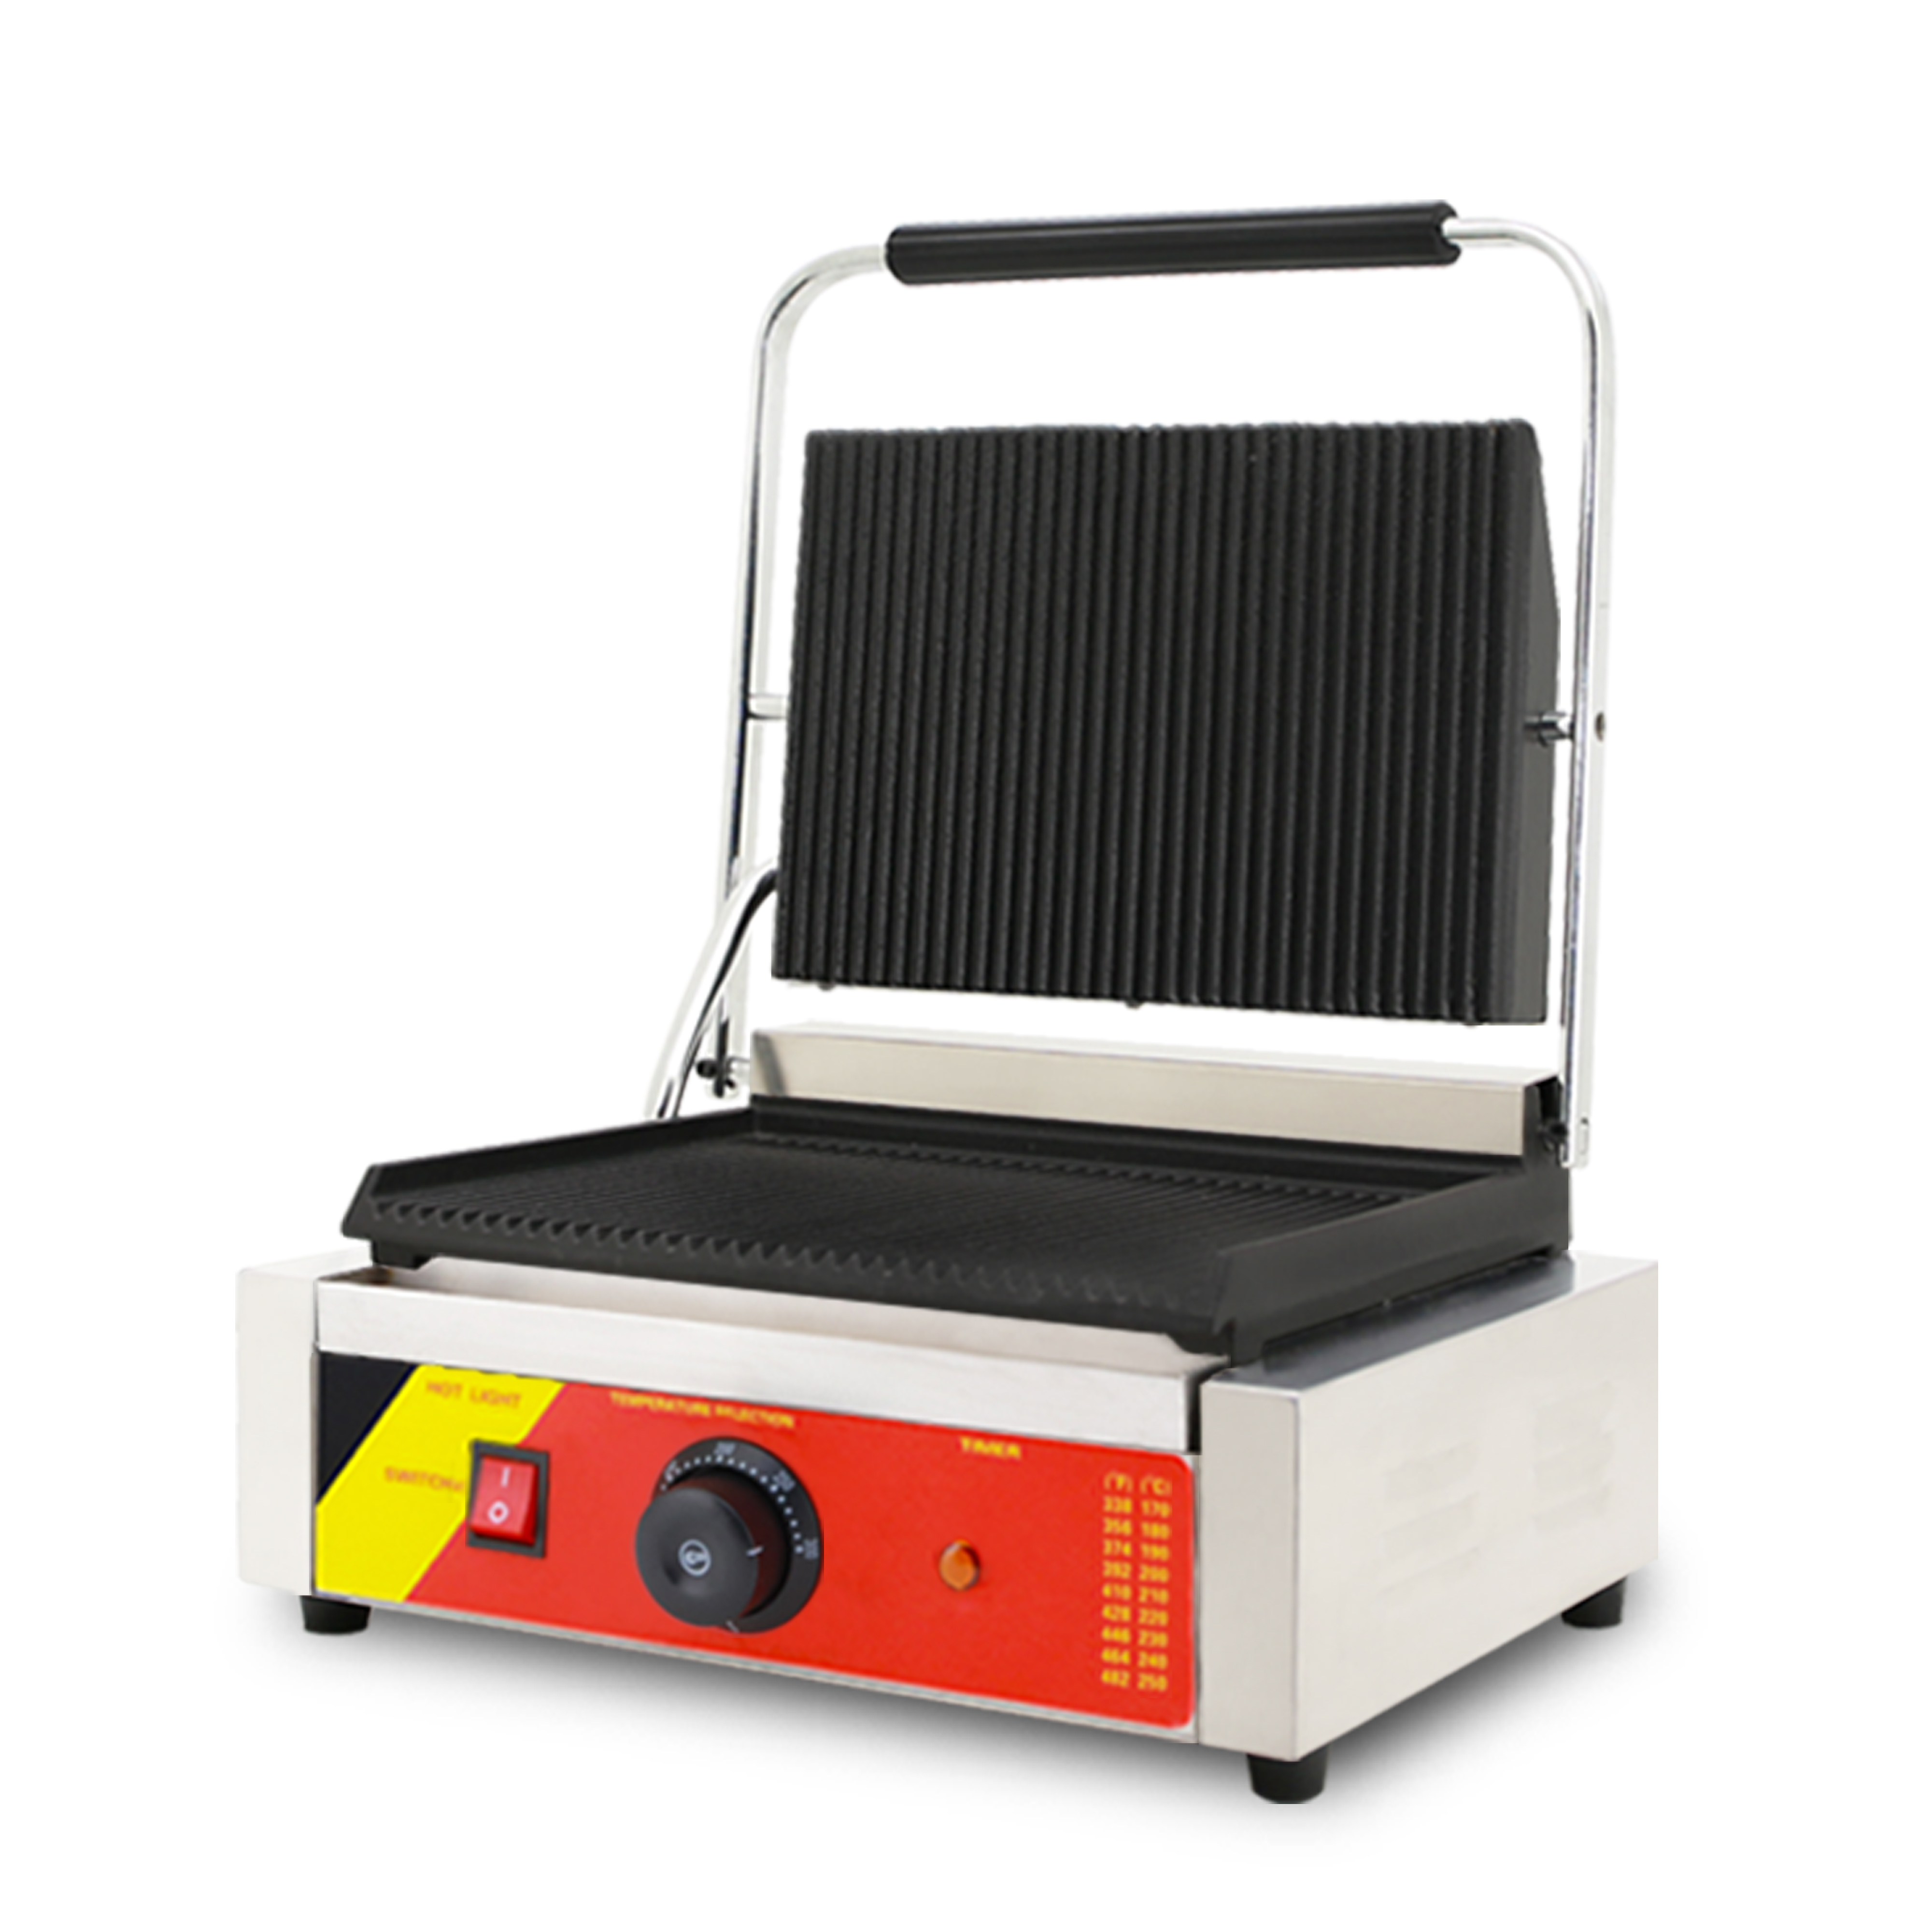 electric sandwich griddle